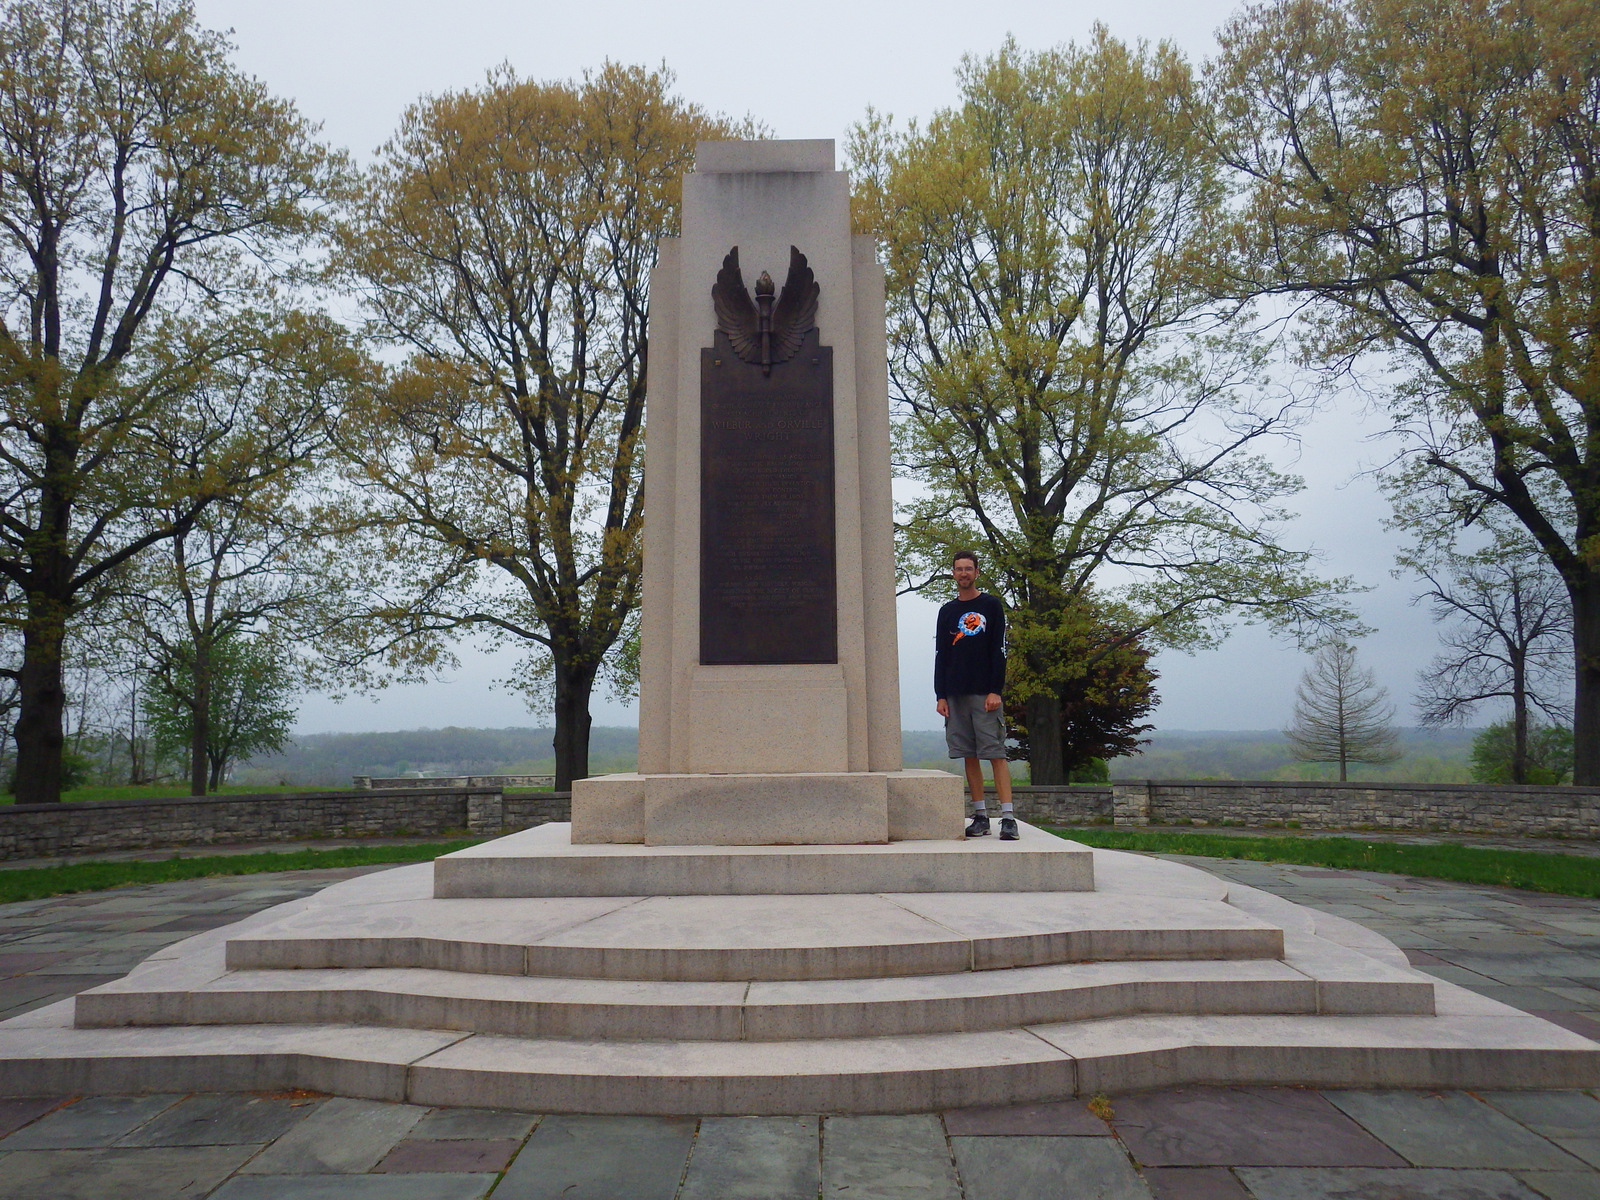 A memorial to the Wright Brothers